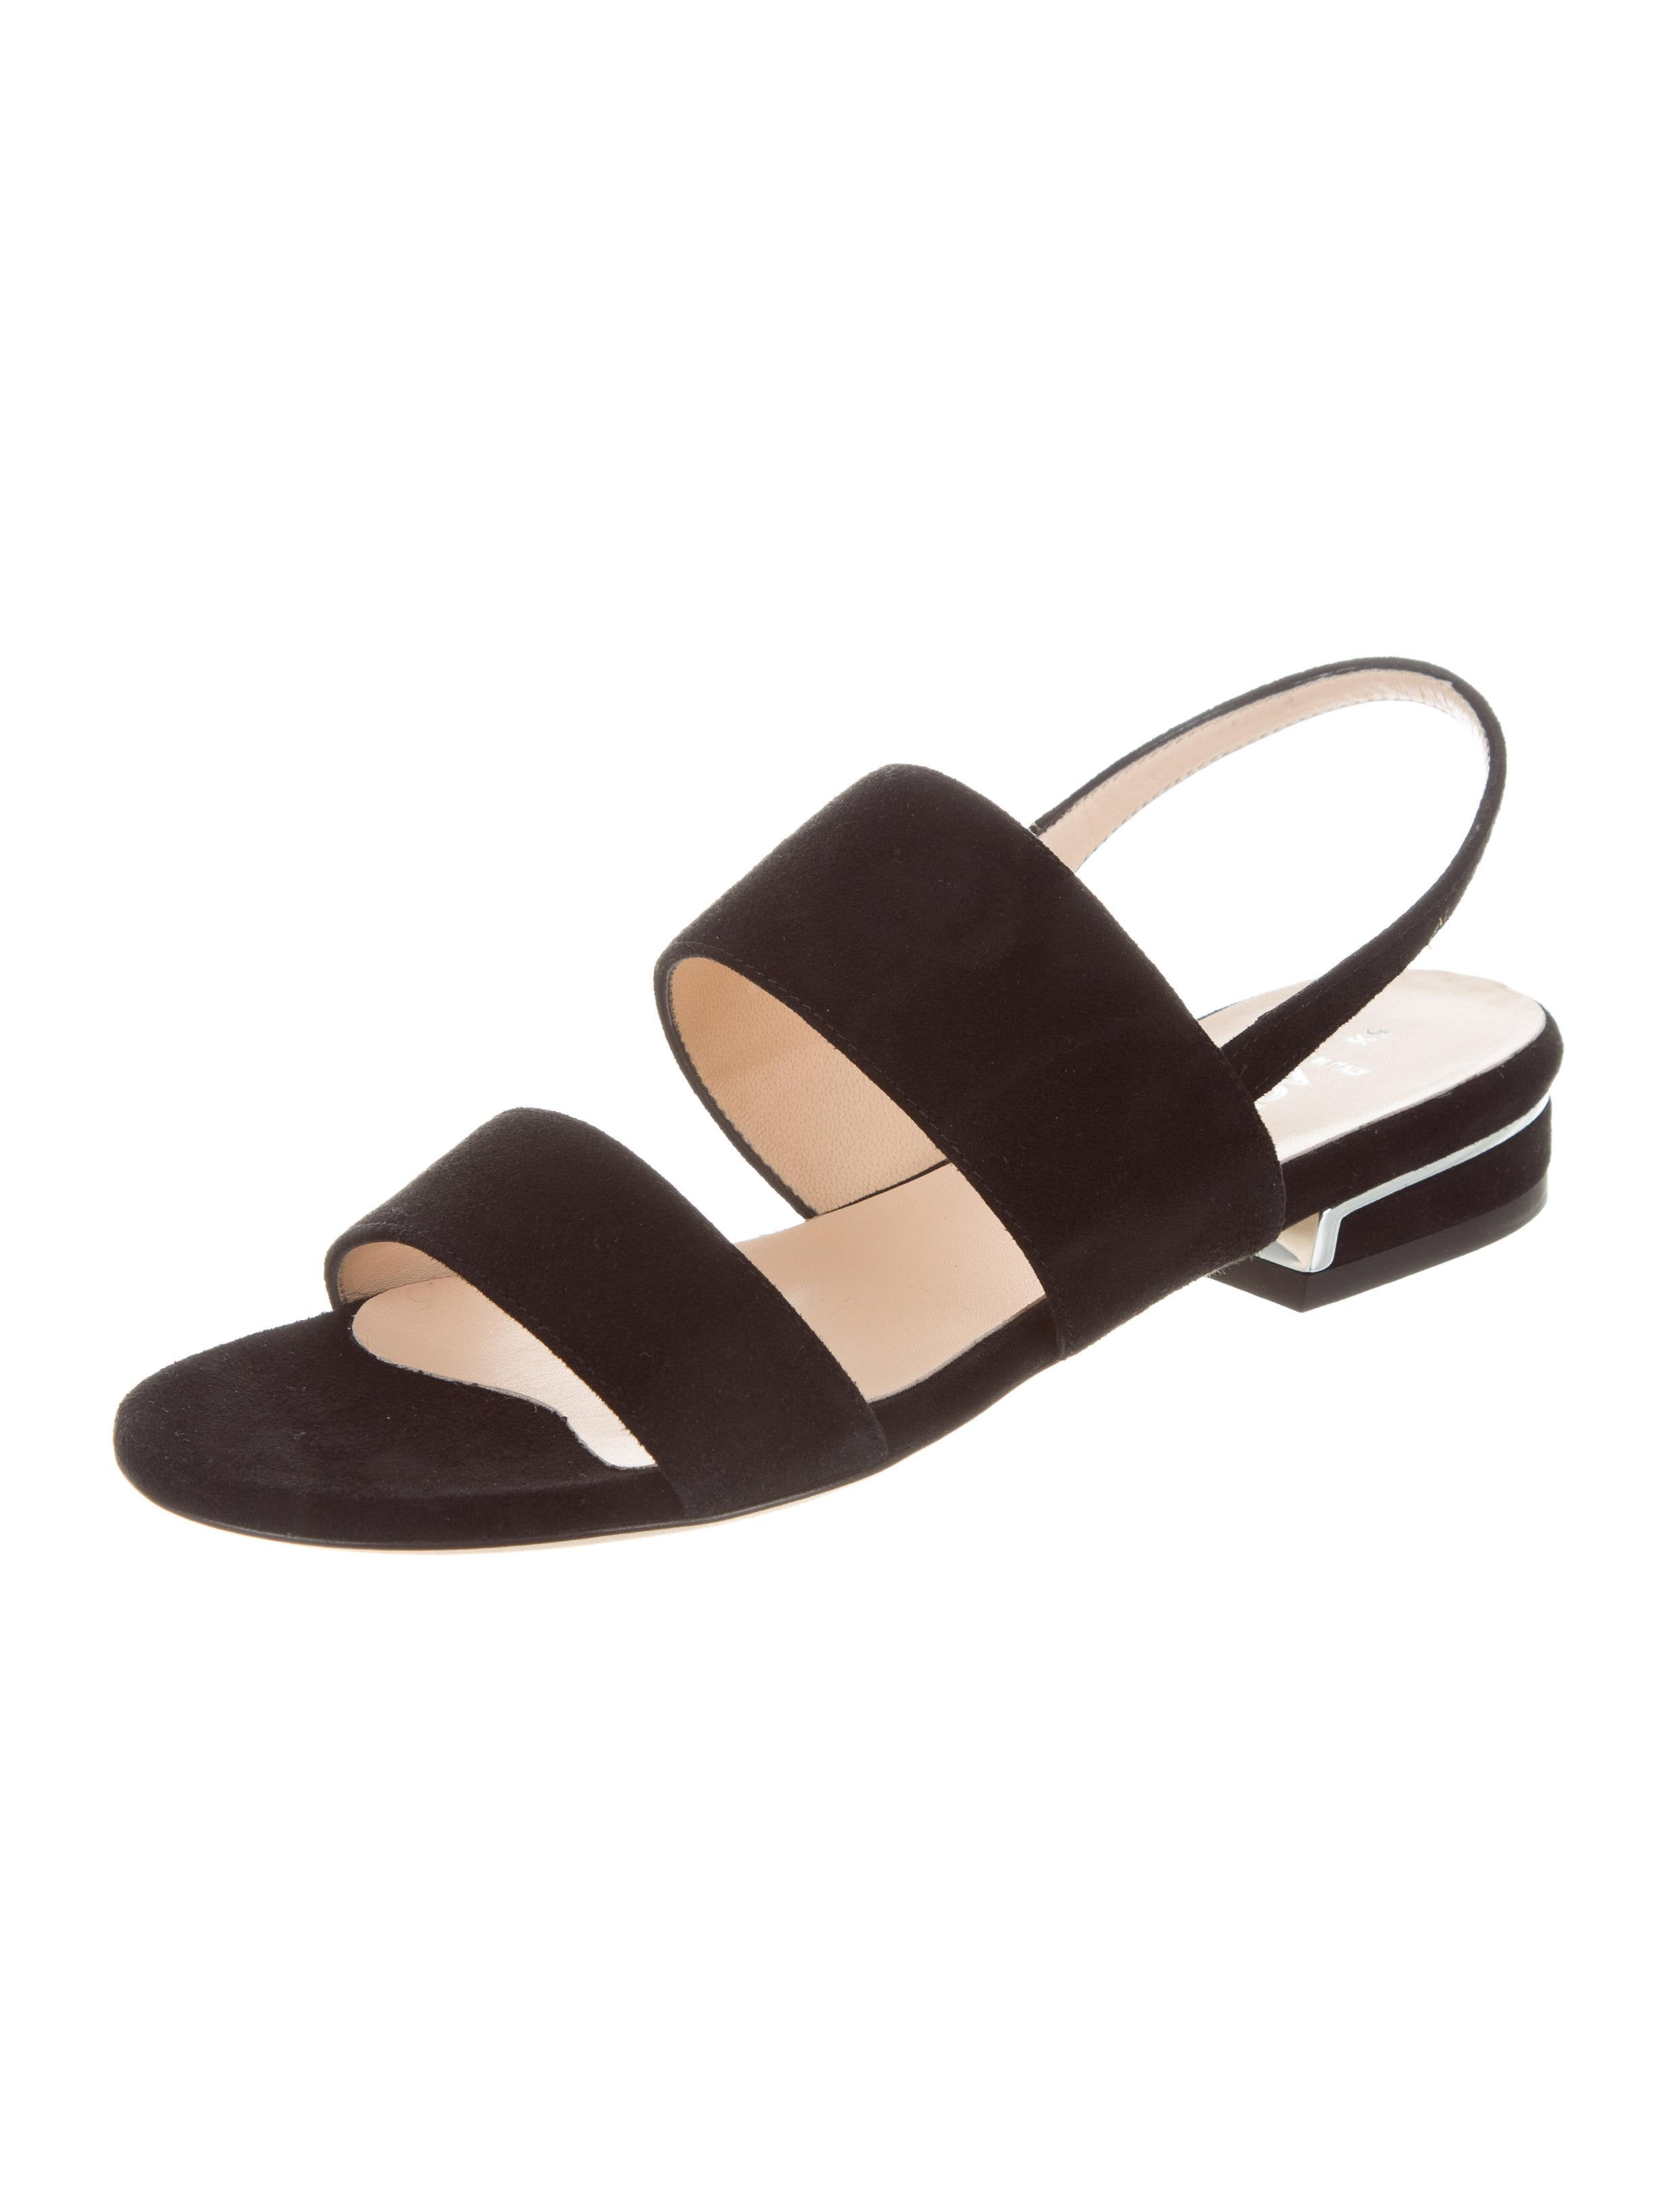 sale excellent purchase cheap price Aquatalia Adina Black Suede Sandals w/ Tags discount official site discount codes really cheap 8CUuQ3DZsw